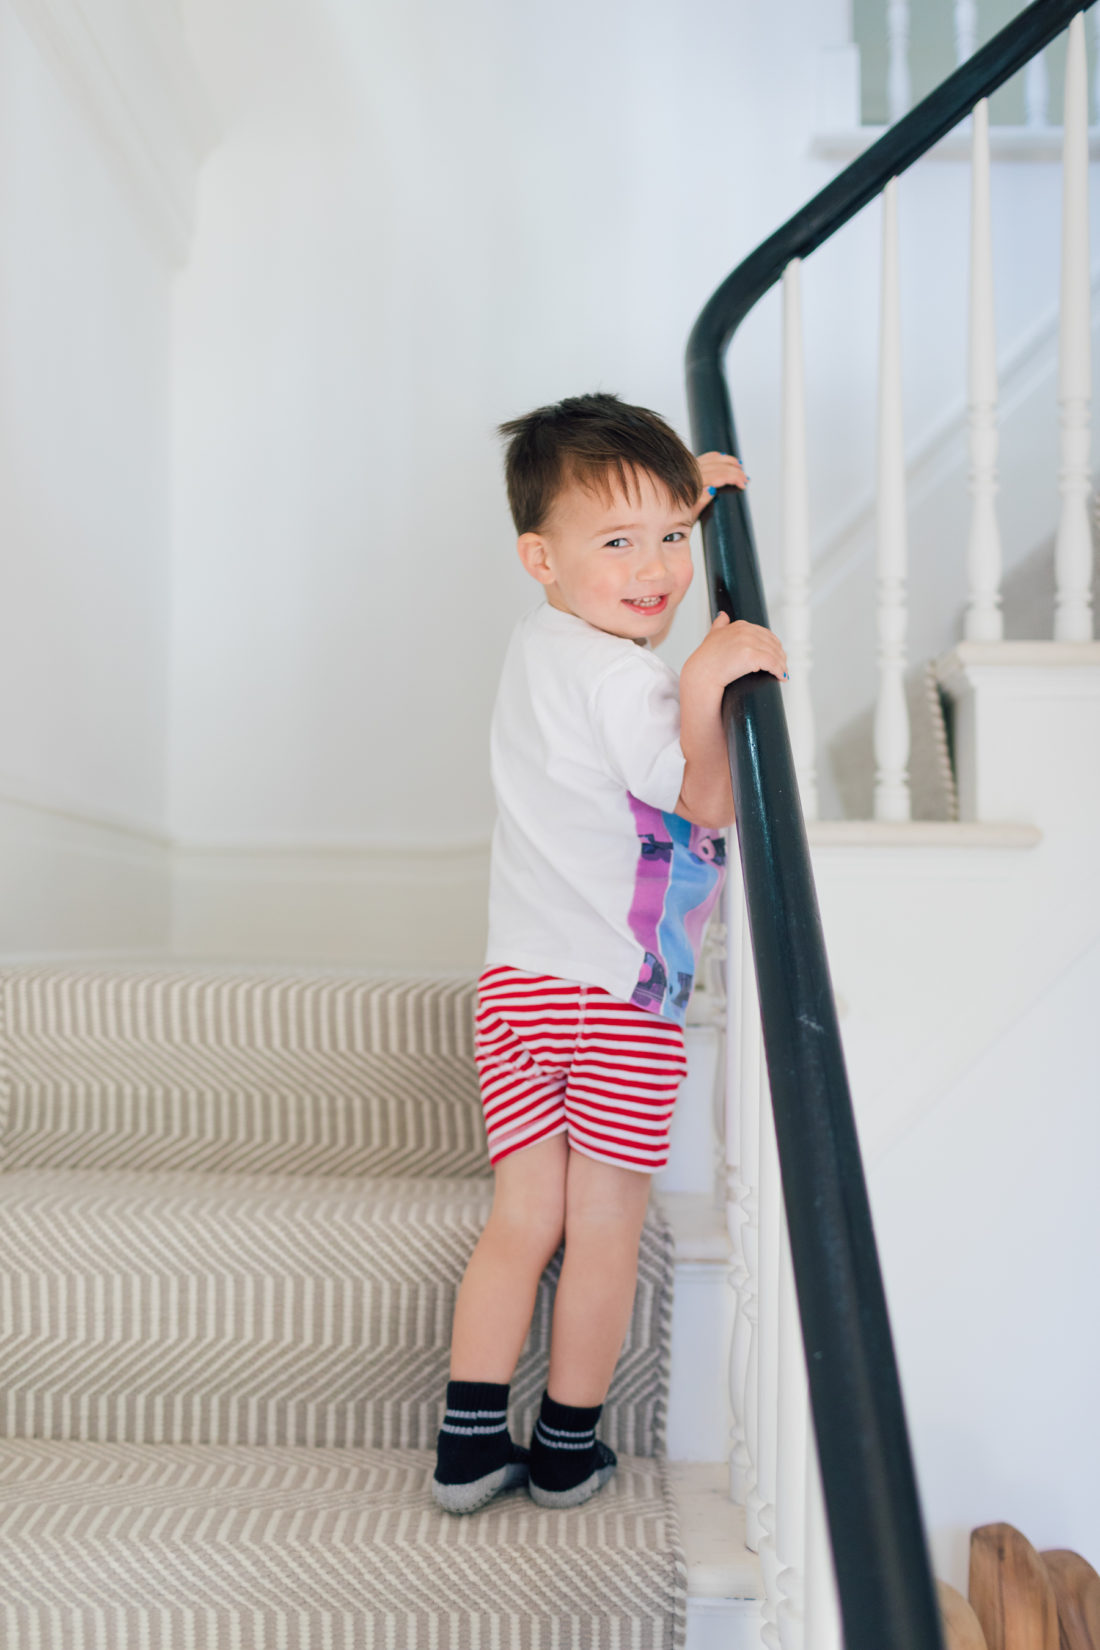 Major Martino turns to walk up the staircase in his connecticut home, wearing the big boy underwear he received at the start of potty training